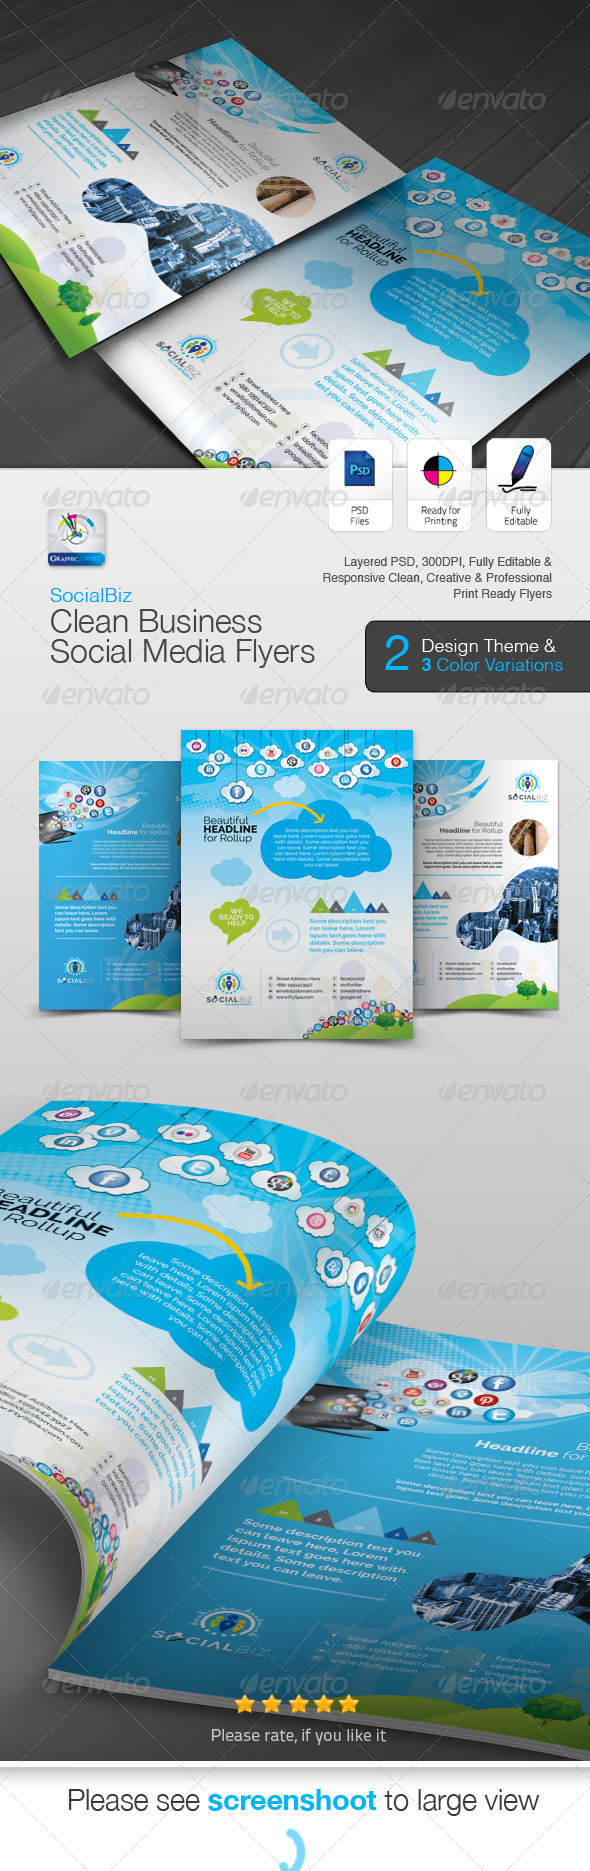 GraphicRiver SocialBiz Social Media Flyer Ad 5748147